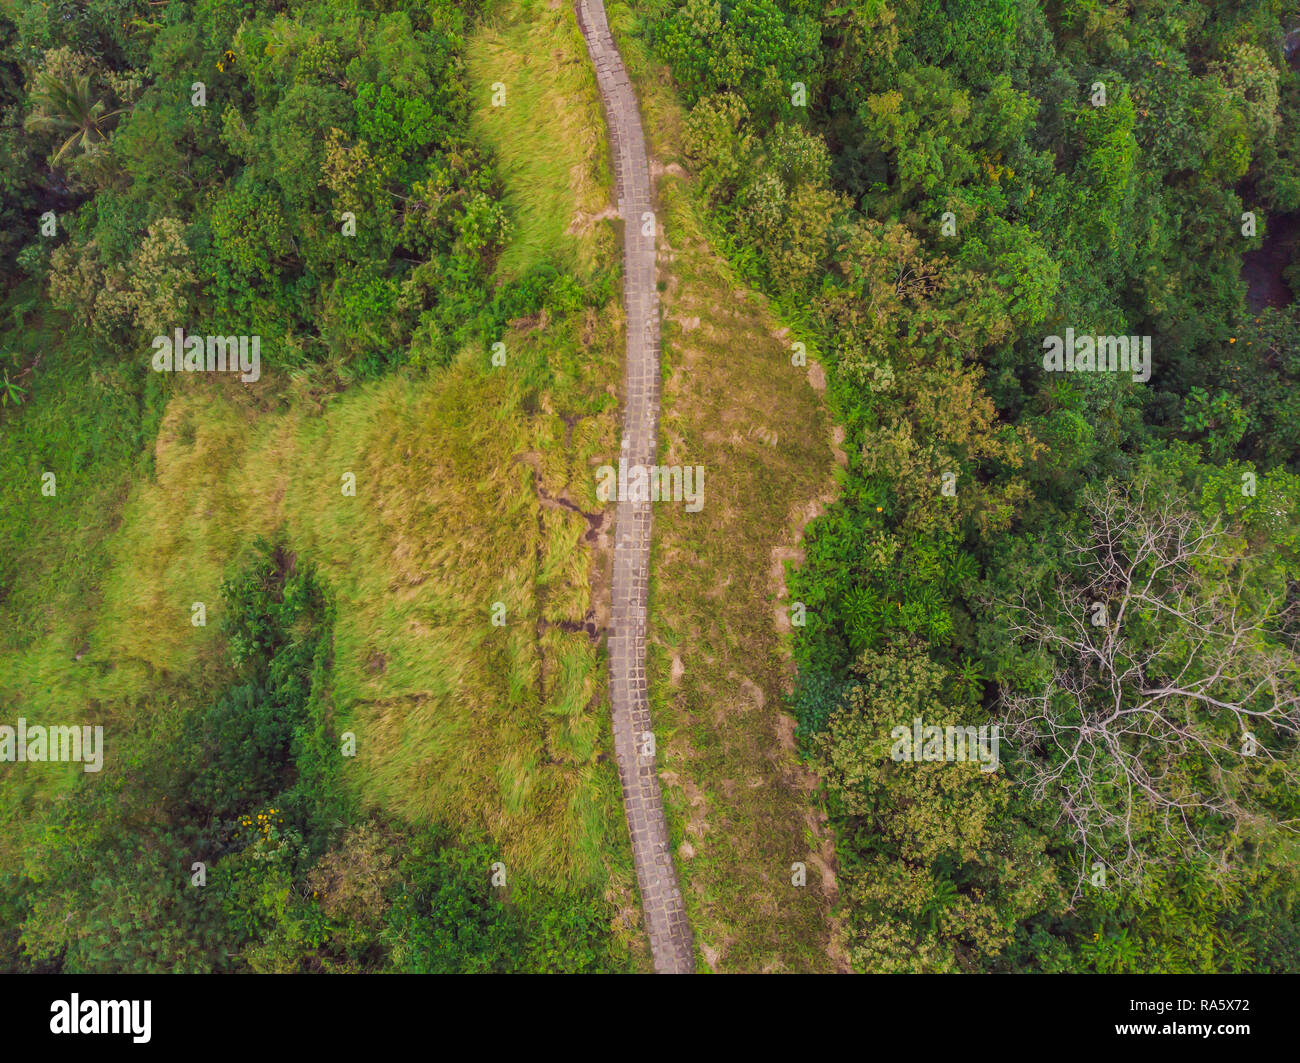 Aerial picture of Campuhan Ridge Walk , Scenic Green Valley in Ubud Bali. Photo from the drone - Stock Image